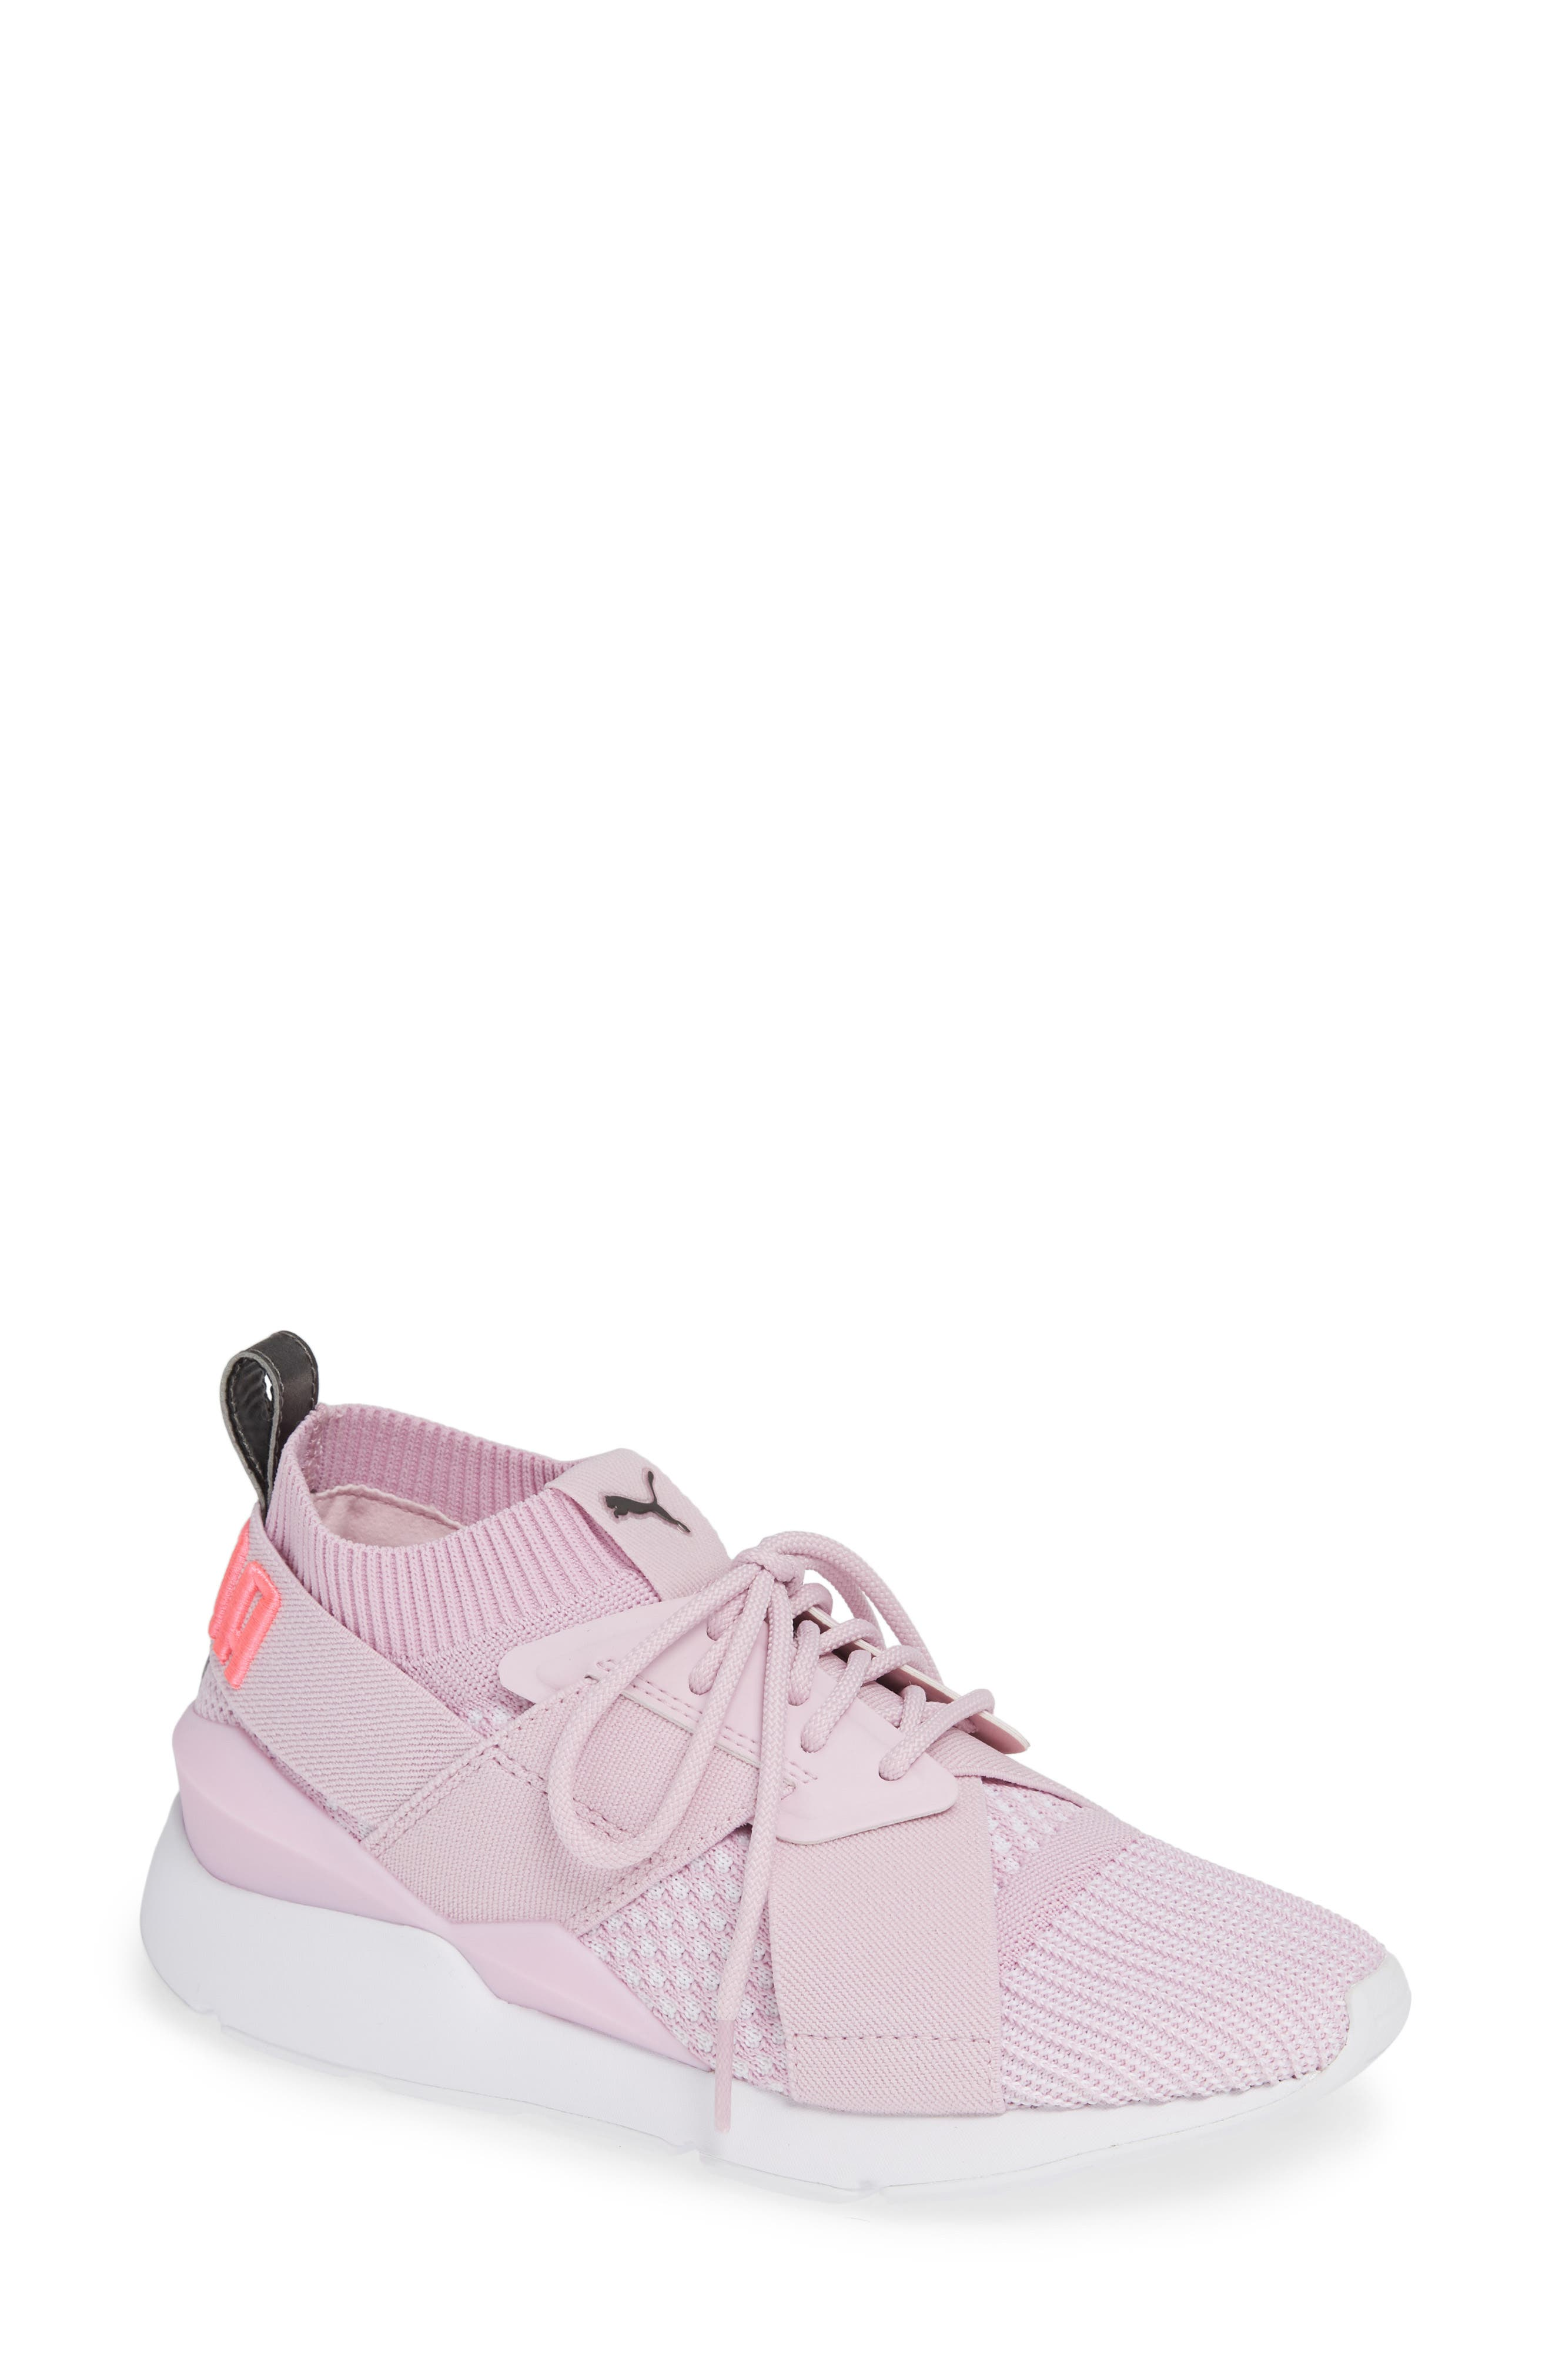 Muse EvoKNIT Sneaker,                         Main,                         color, 500